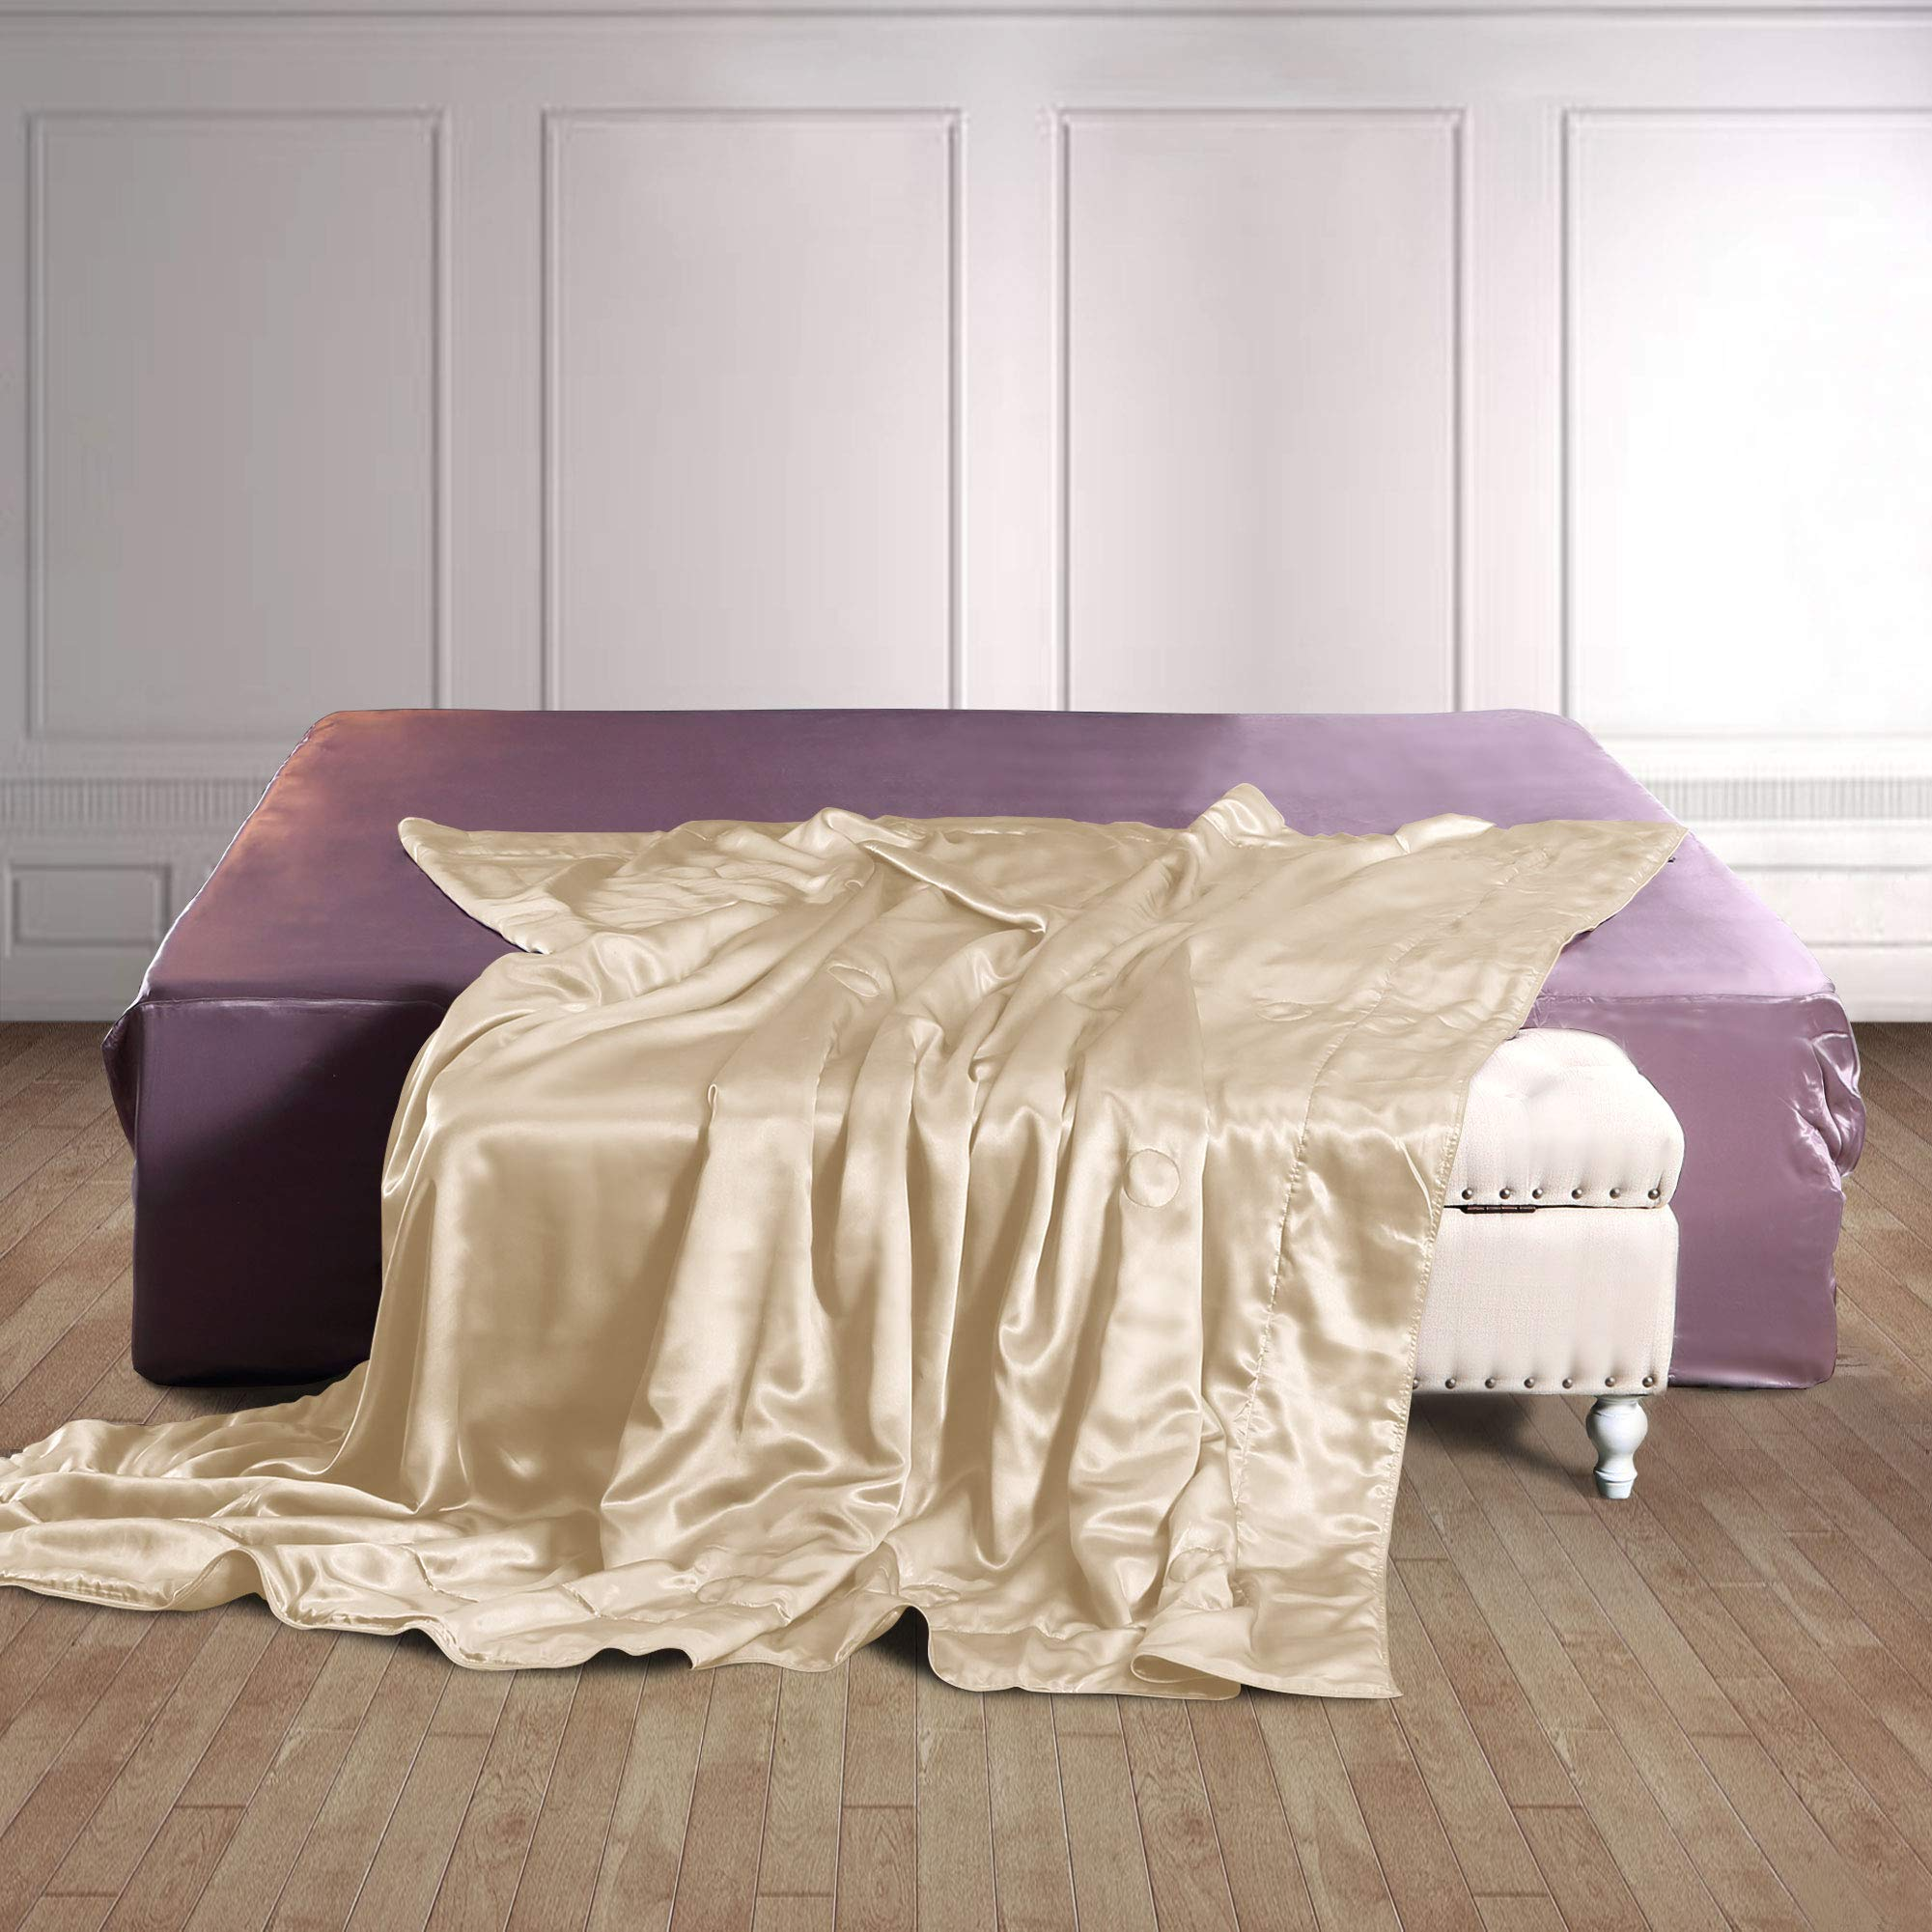 THXSILK 100% Silk Throw Blanket for Bed/Couch Top Grade Long-Strand Silk Quilted Bedspread Soft & Cozy (Champagne, 53x70 inch)